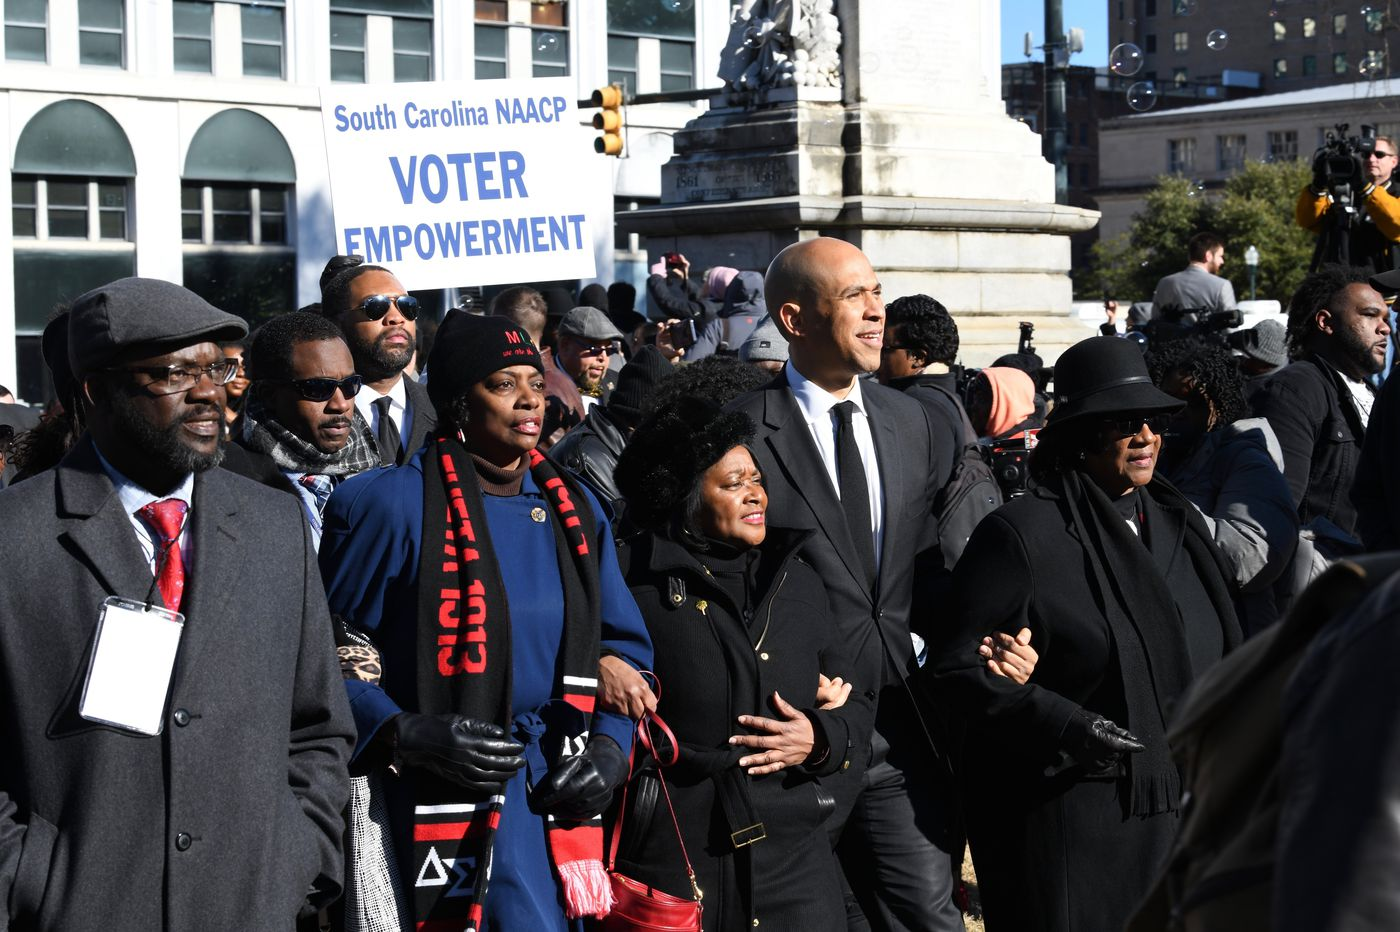 Cory Booker tackles race, racism as he courts black vote in South Carolina